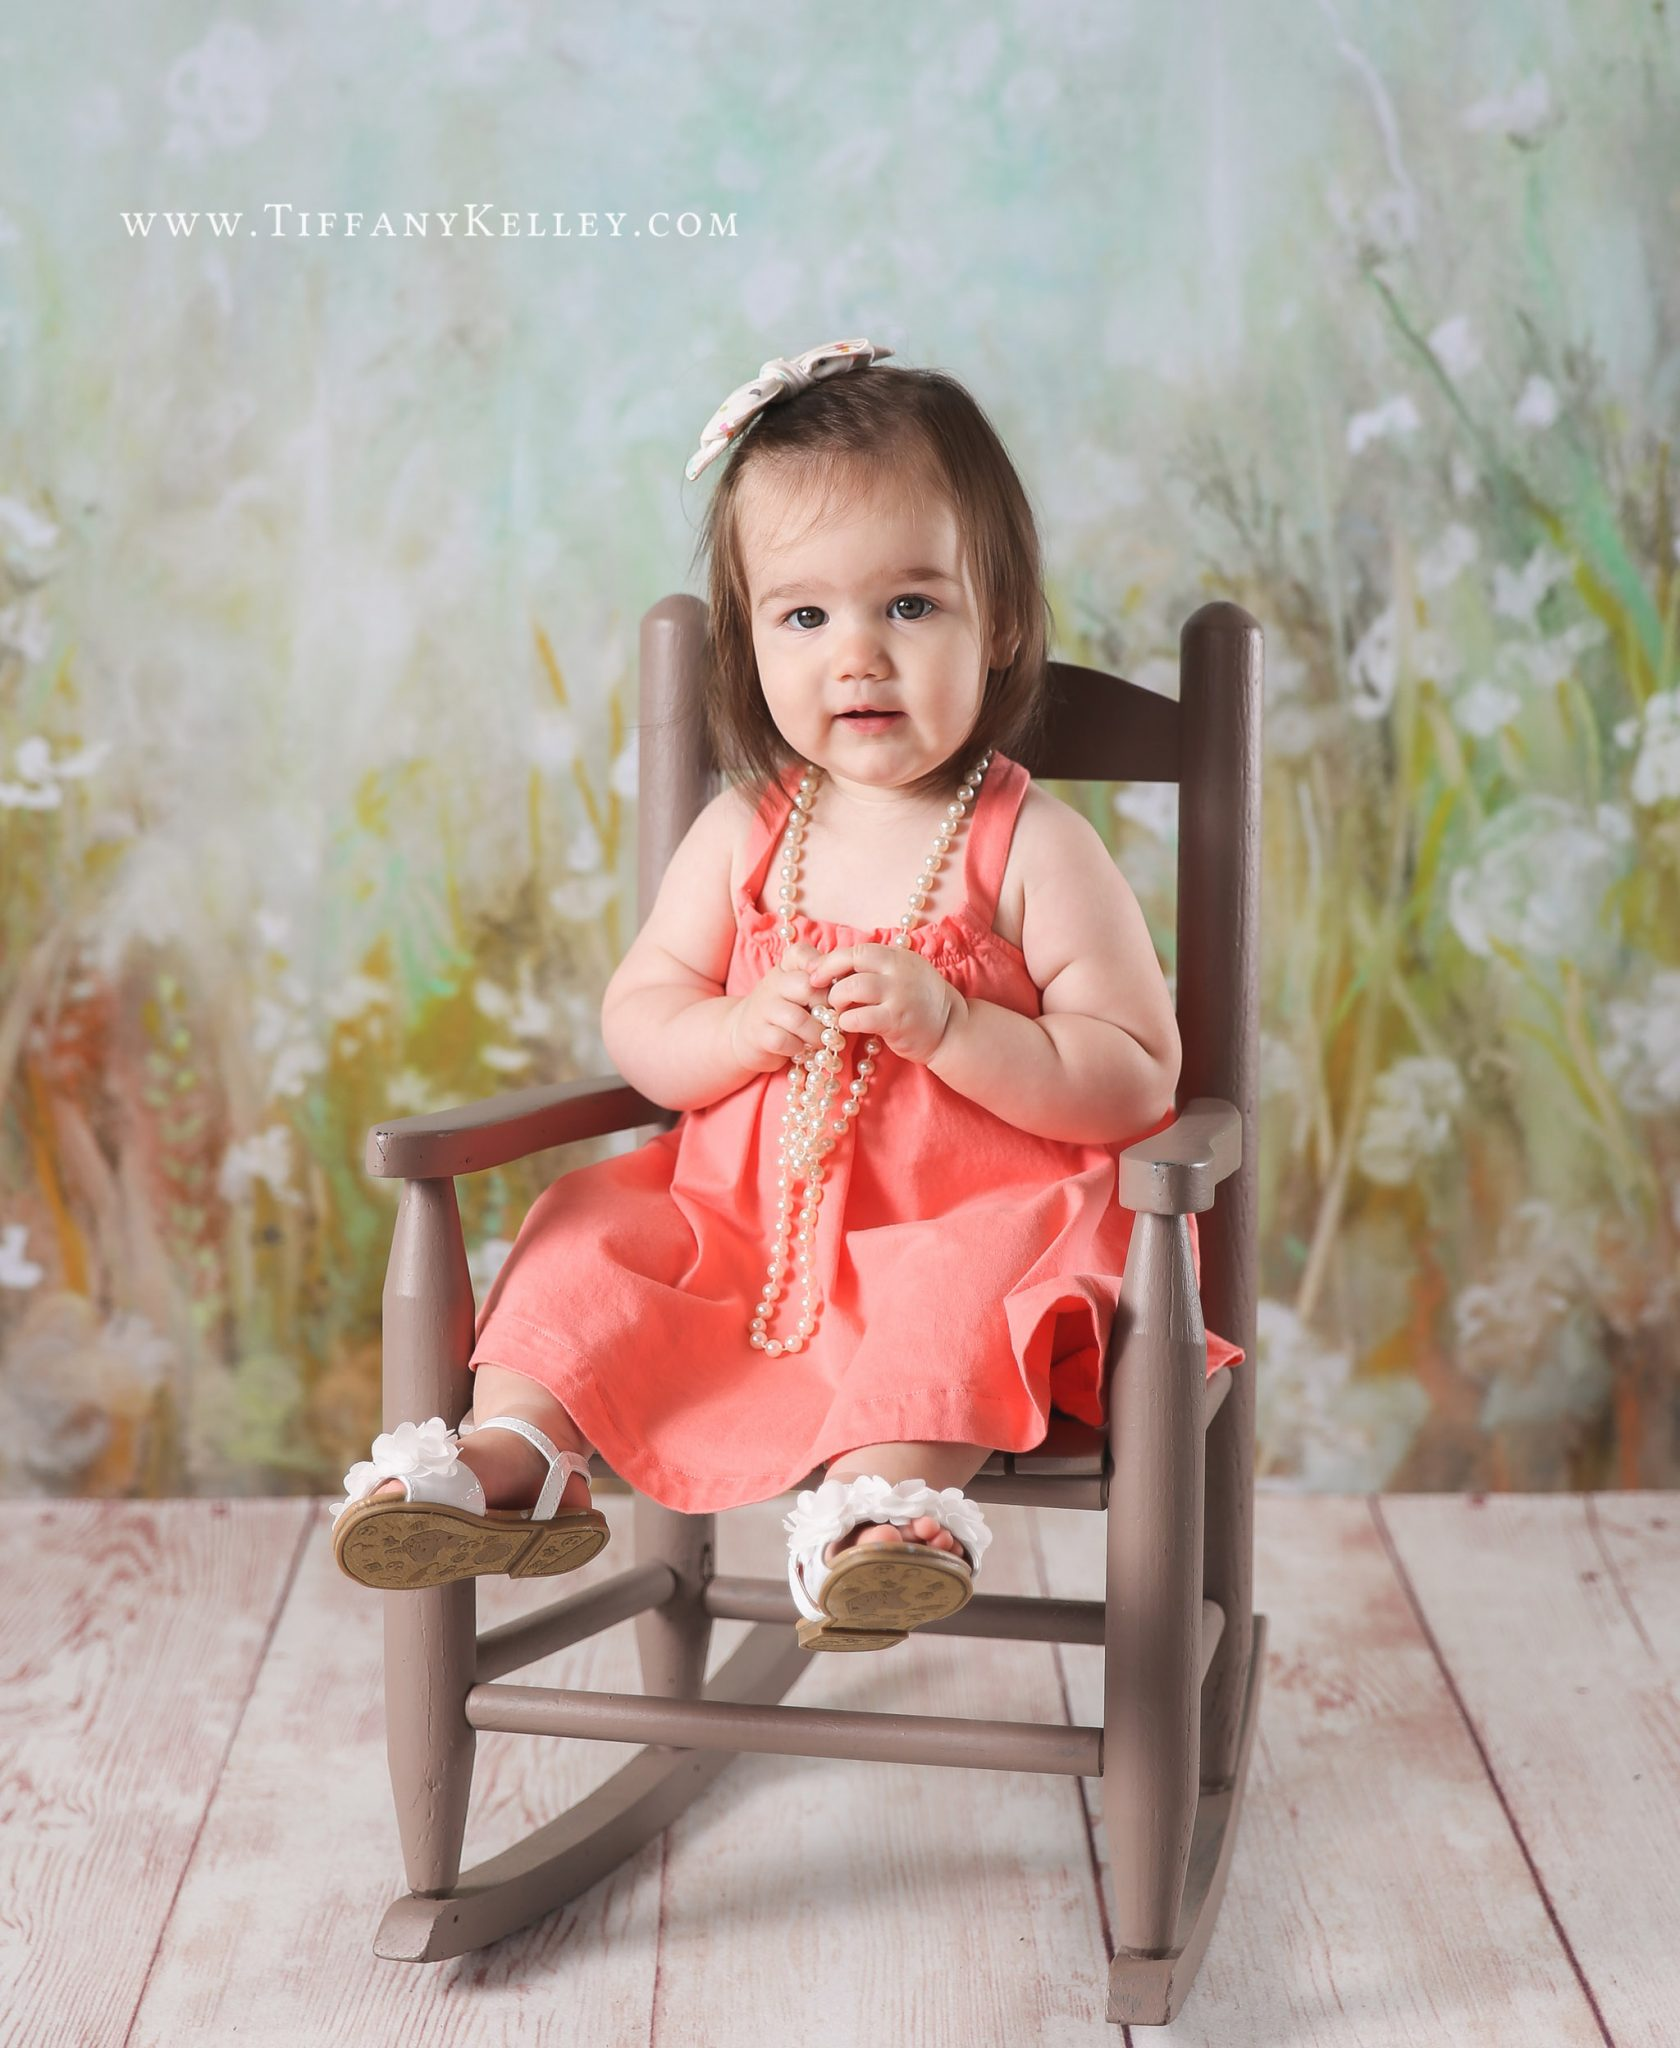 Meredith Branson Springfield Nixa MO Family Photographer Tiffany Kelley Photography